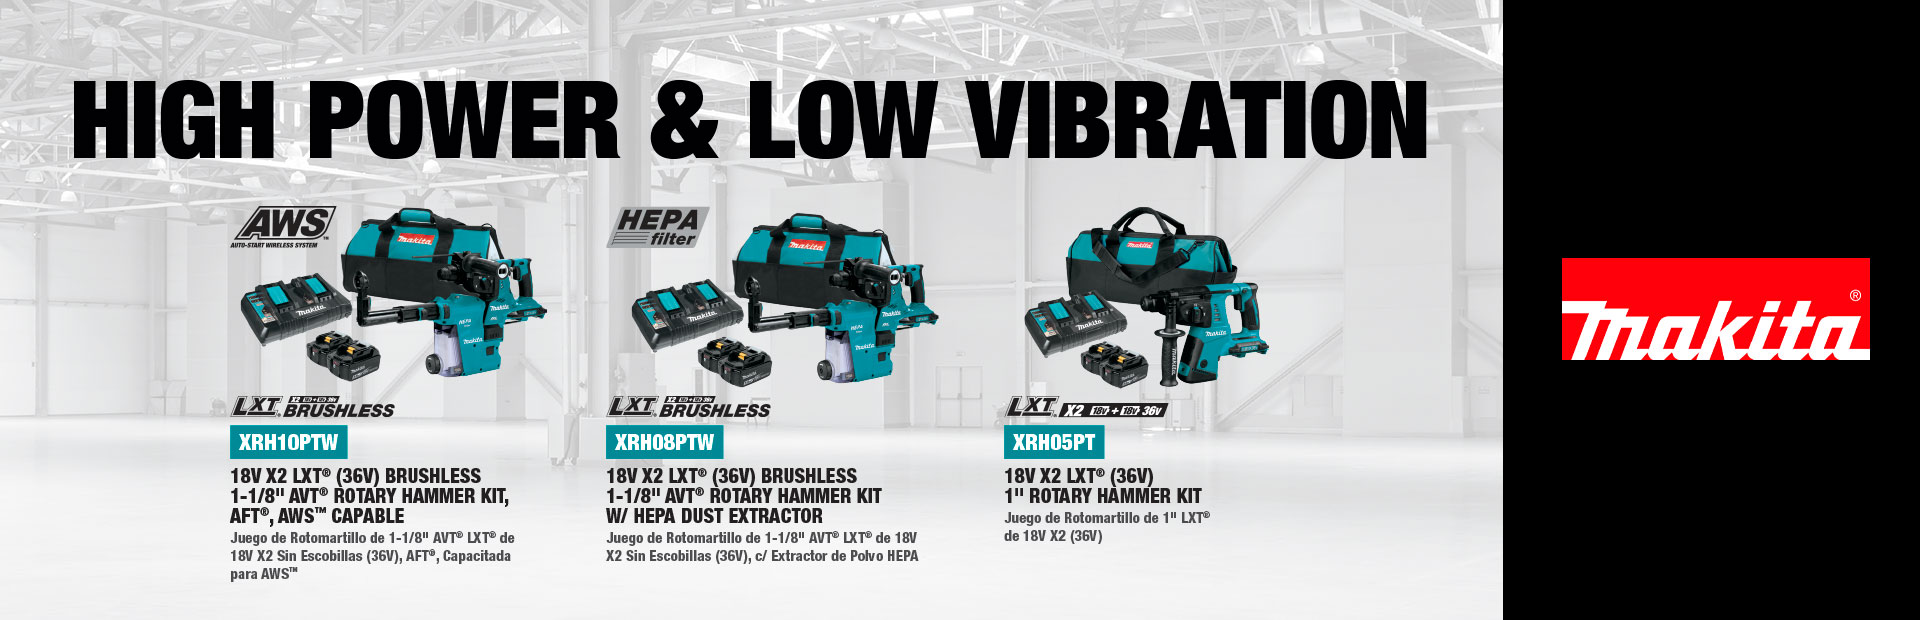 Makita: High Power & Low Vibration